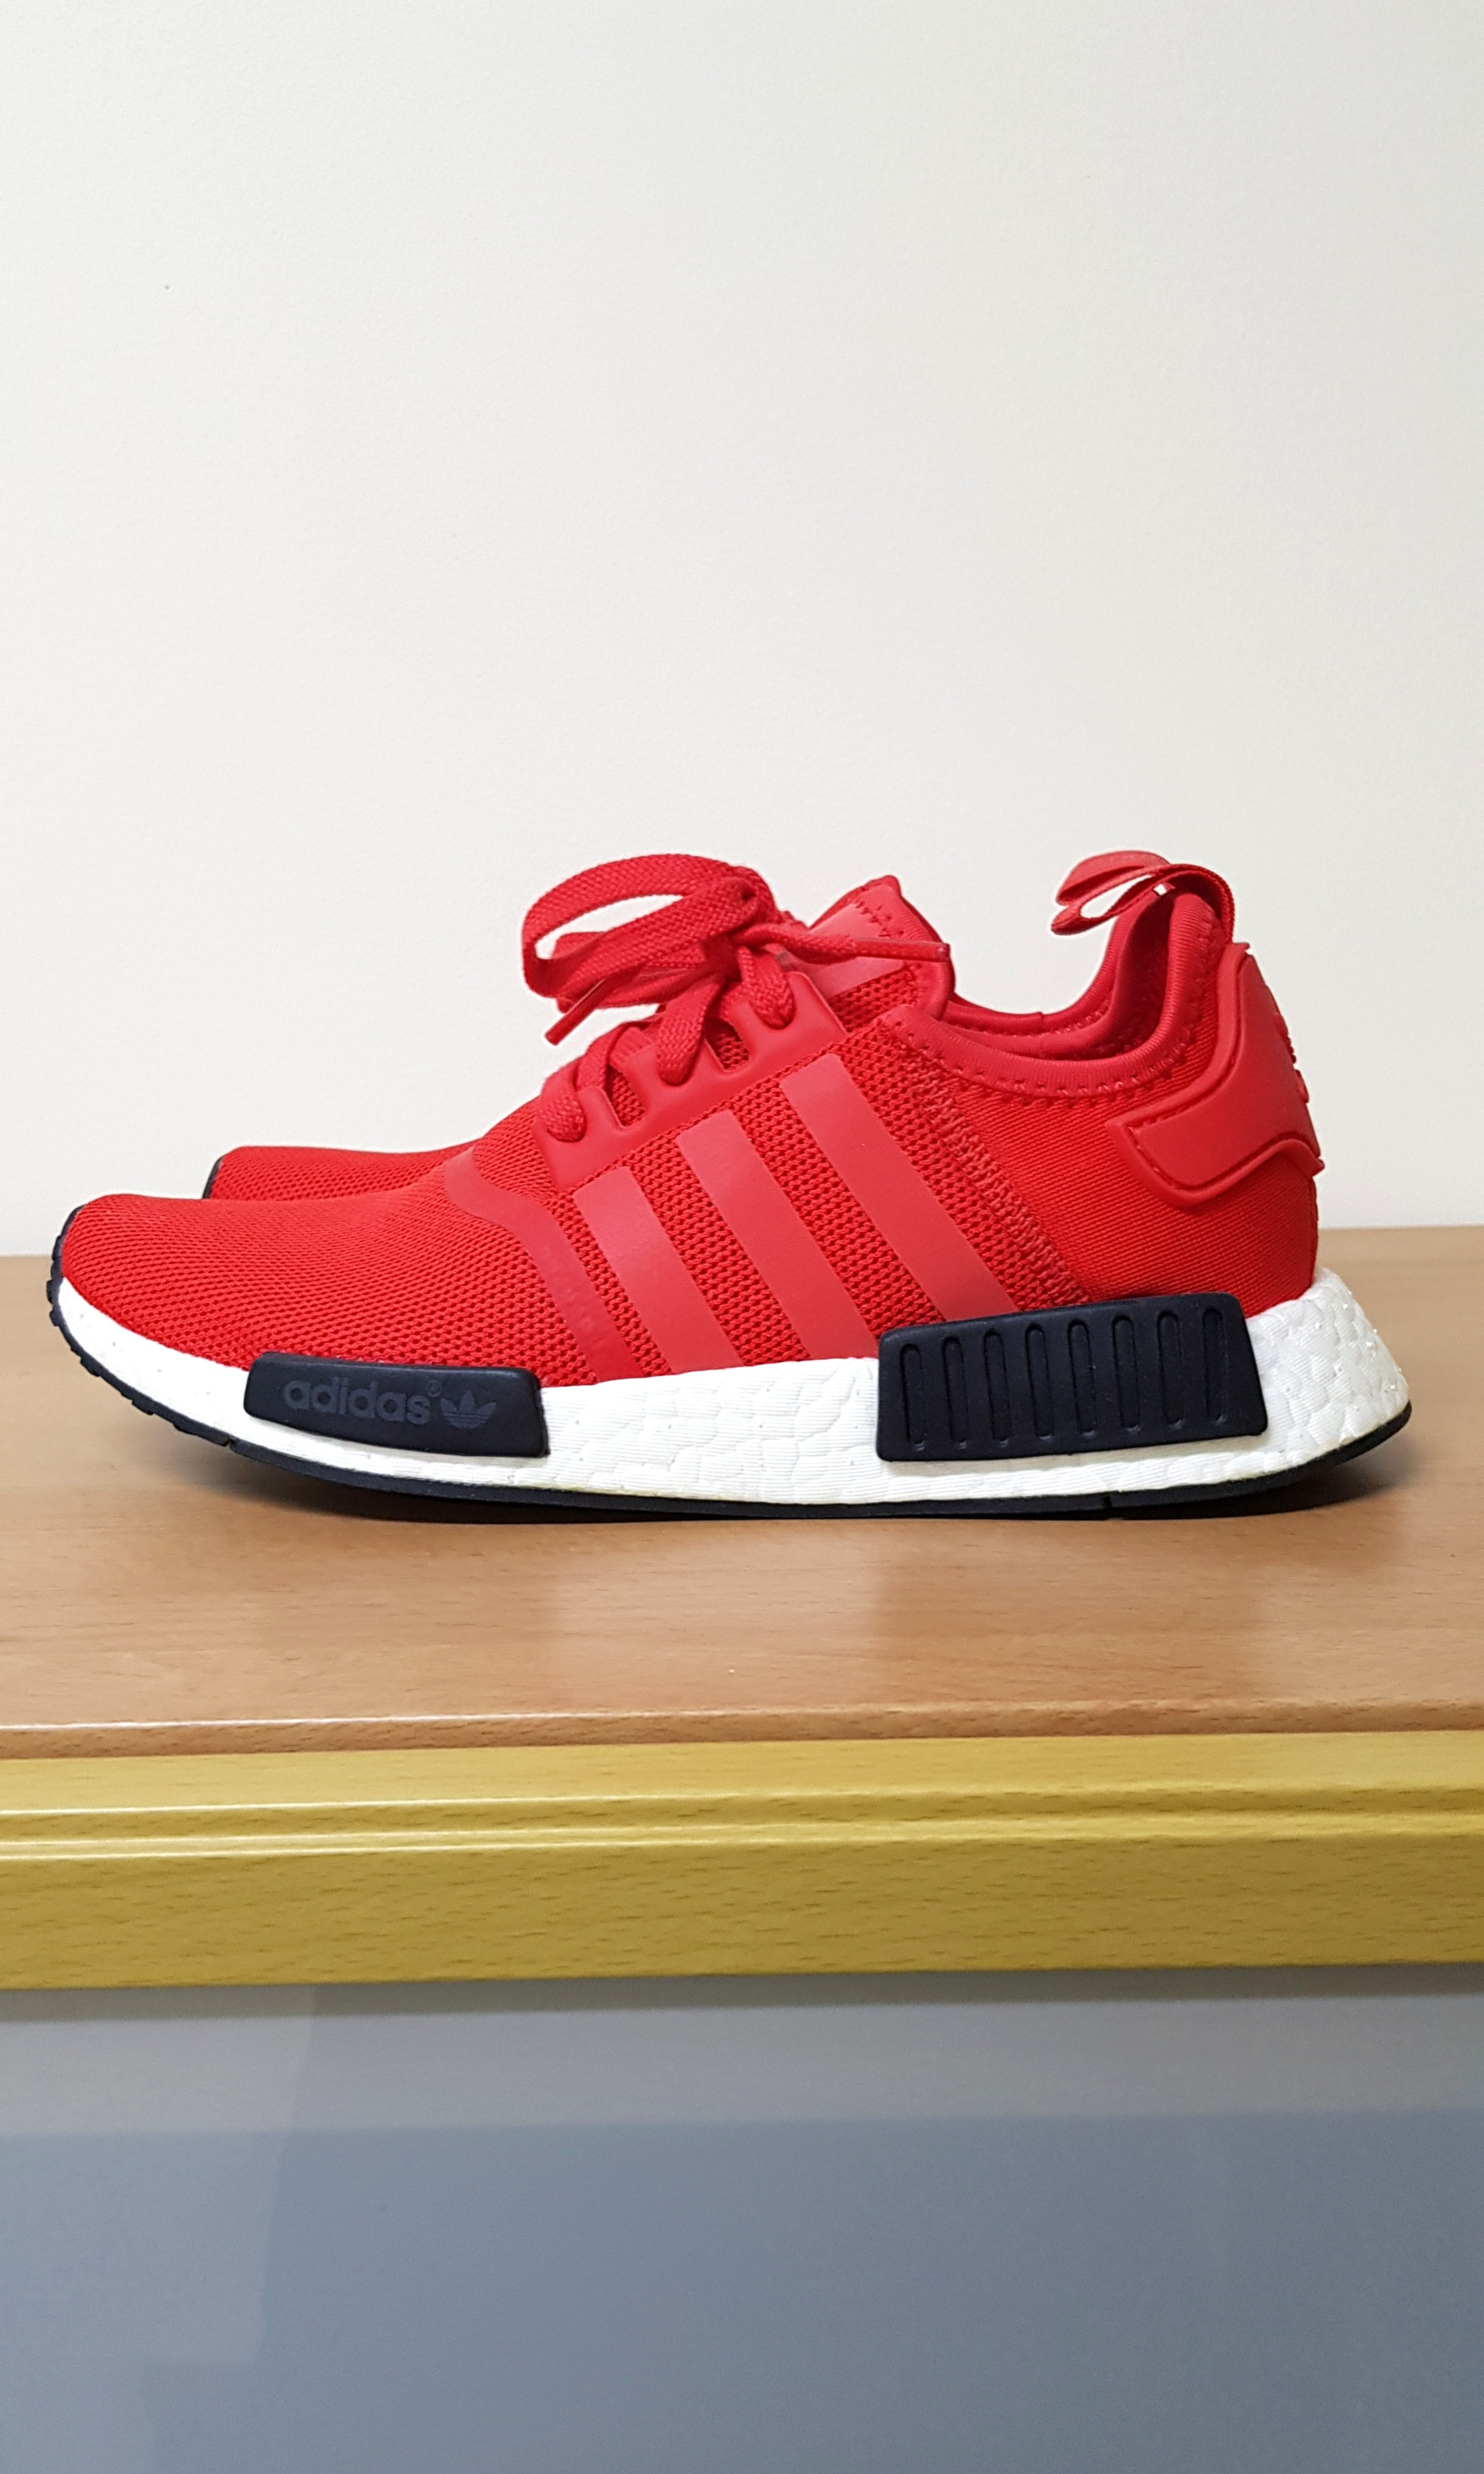 2339b2d32 Adidas NMD R1 Red Black Sneakers